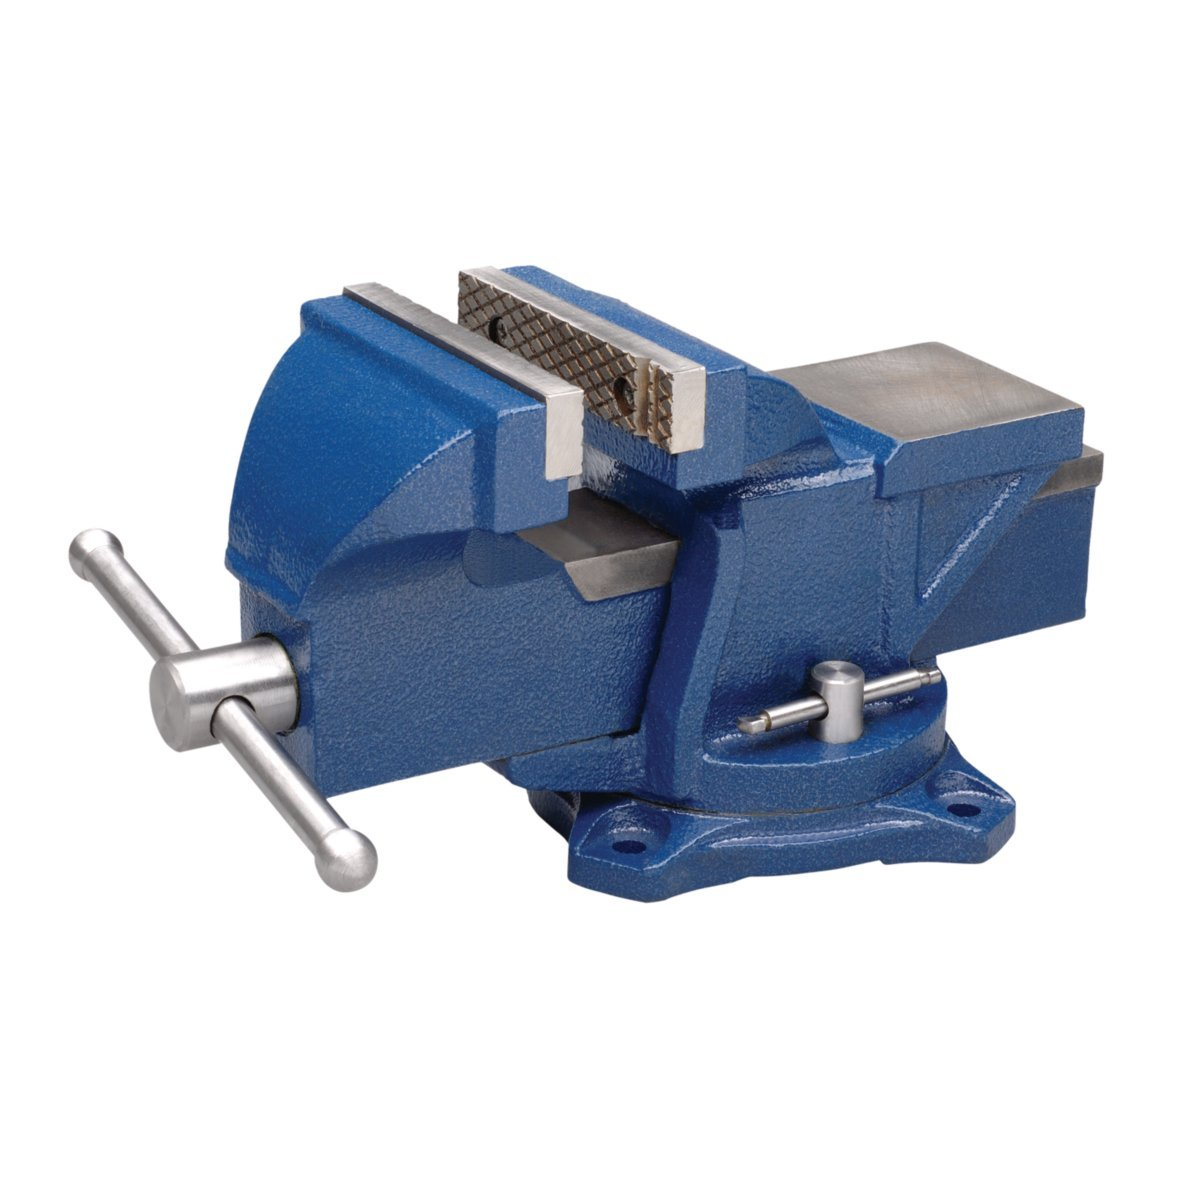 Wilton 11104 Wilton Bench Vise, Jaw Width 4-Inch, Jaw Opening 4-Inch by Wilton